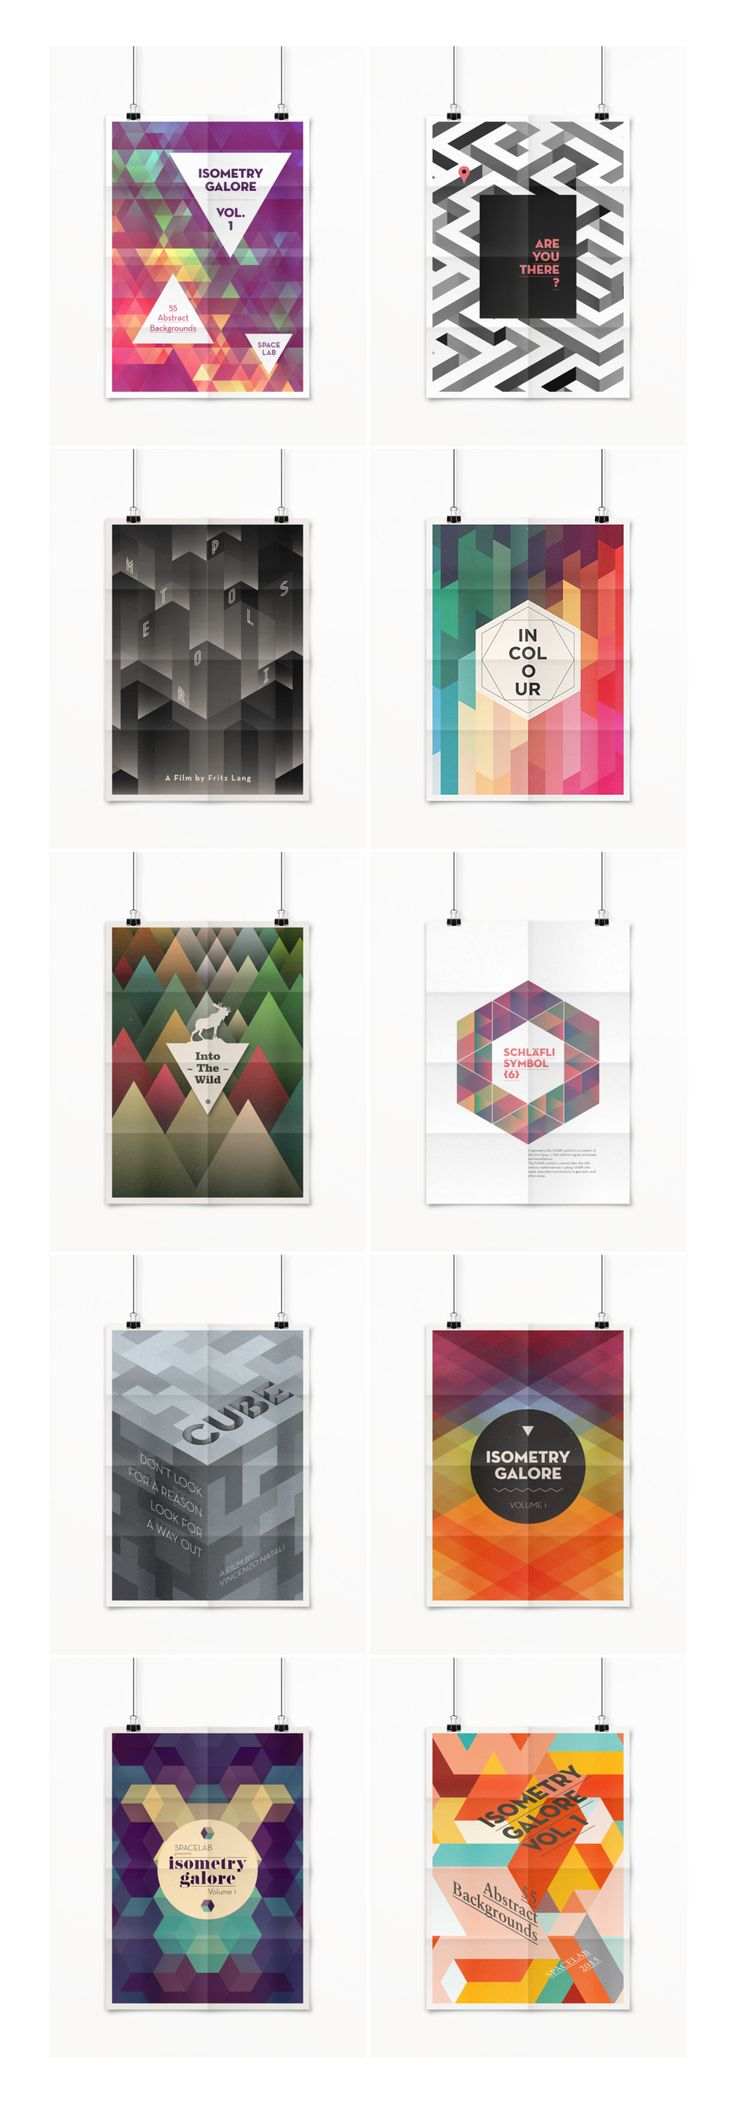 Poster design trends 2015 - Exclusive Free Liquorice Pompom Tutorial Graphic Design Trendsposter